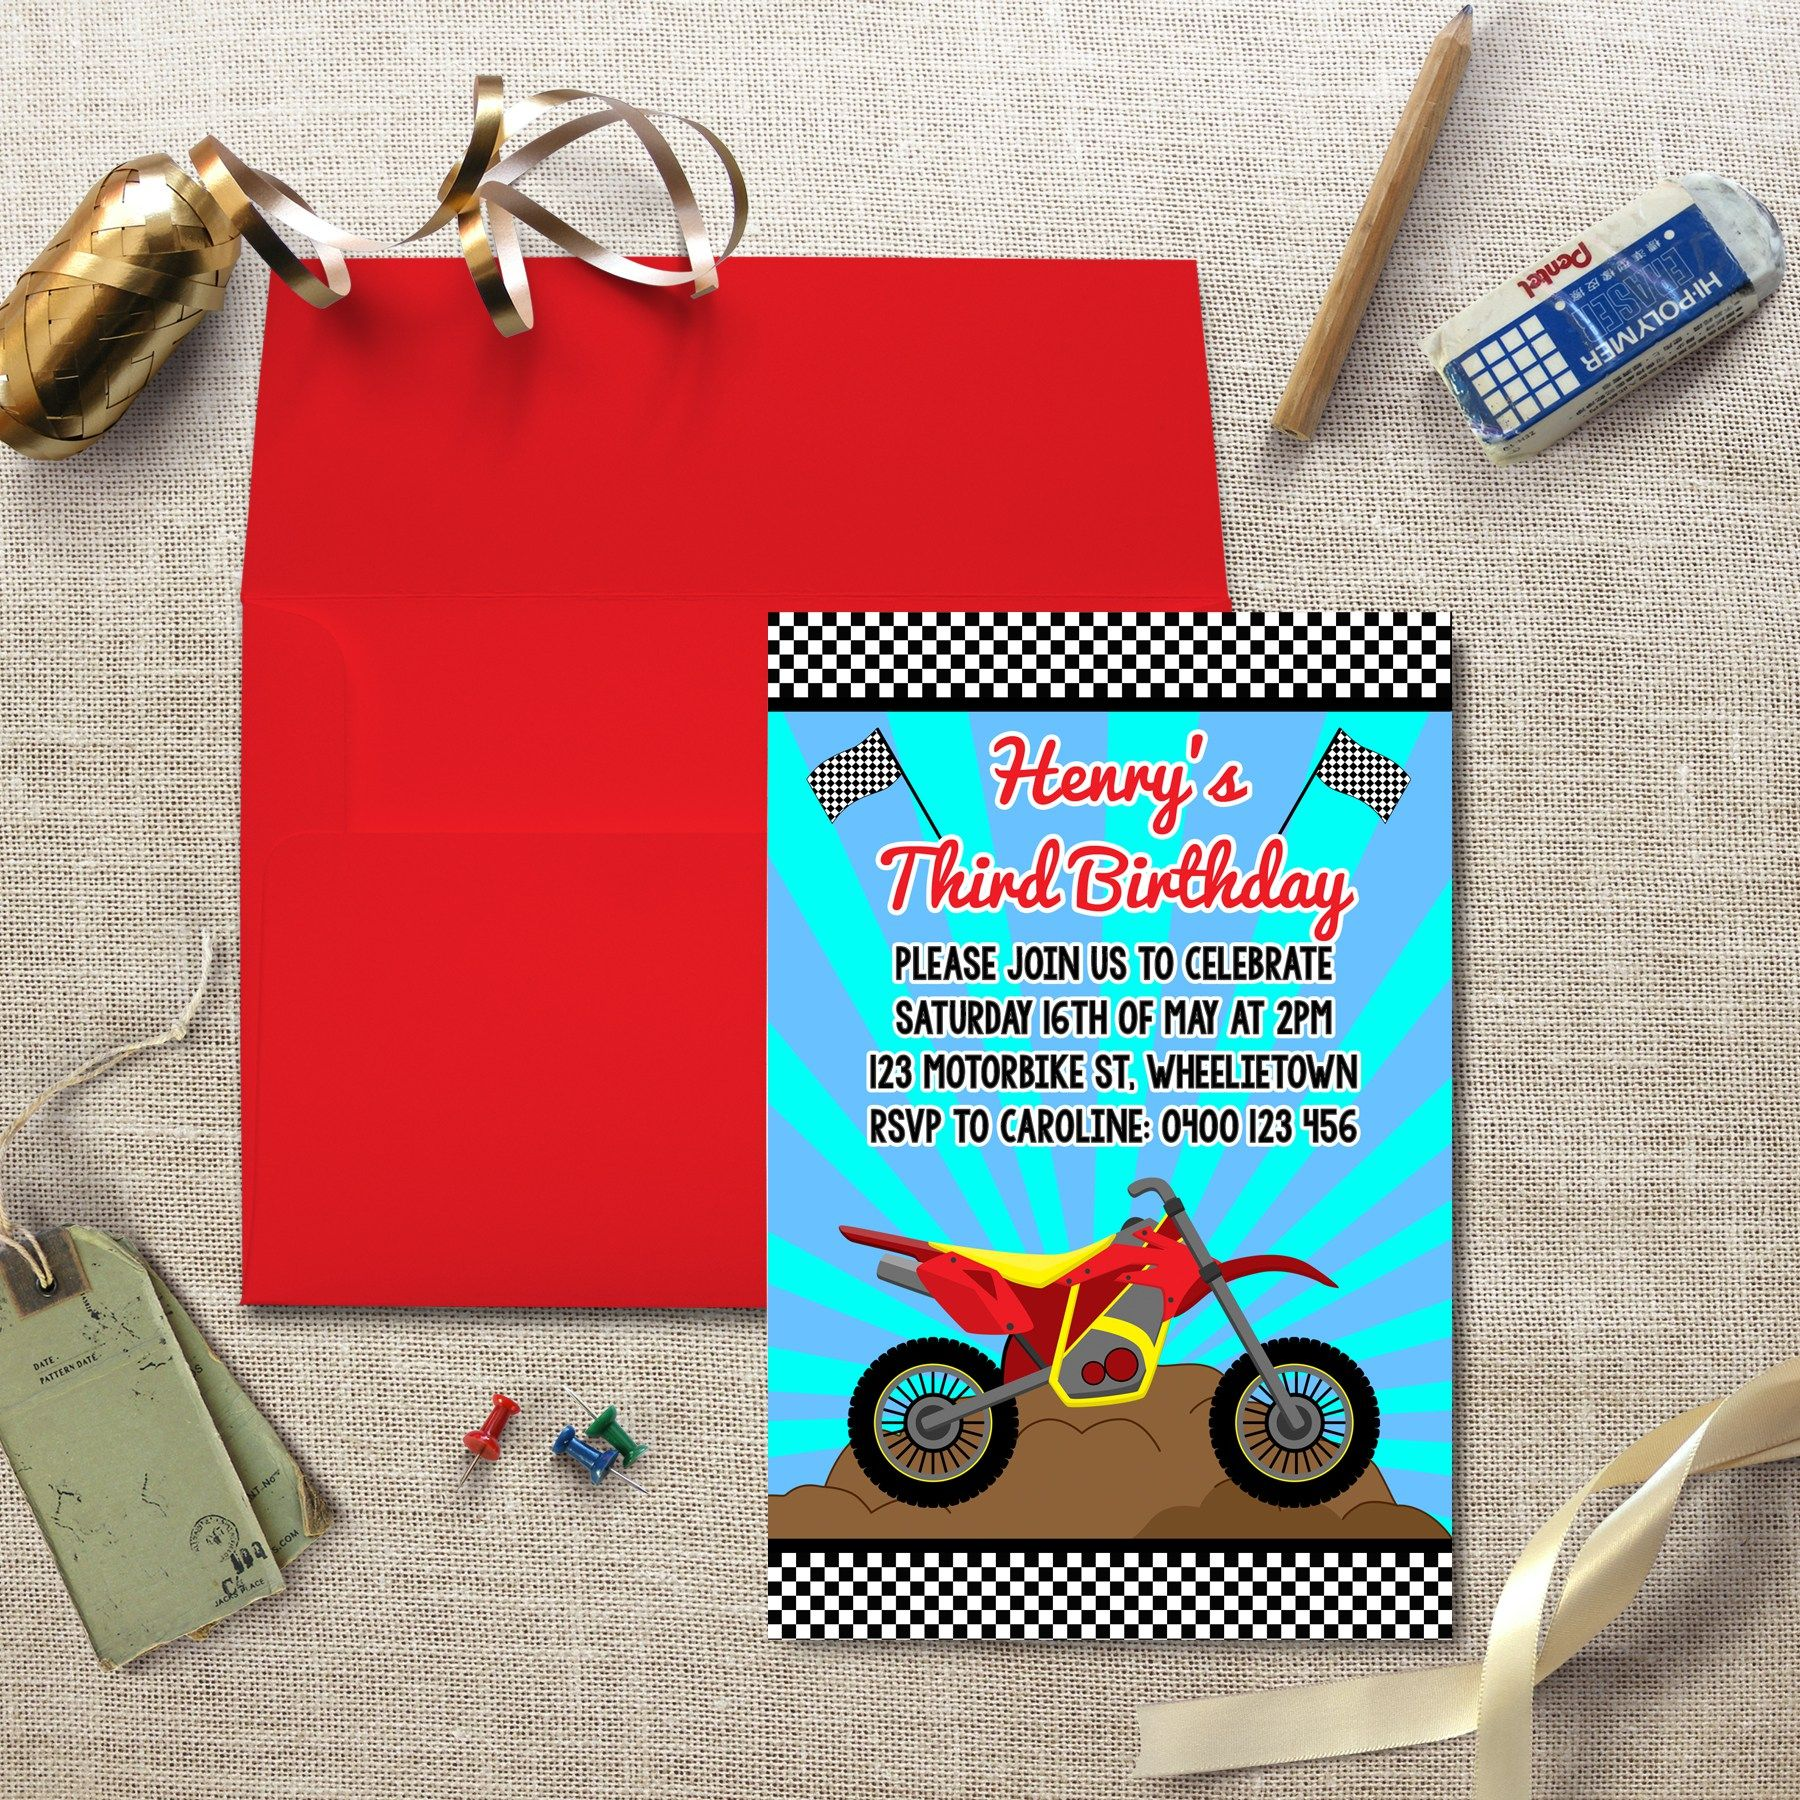 Motorcycle Invitation | Pinterest | Party invitations, Motorcycle ...